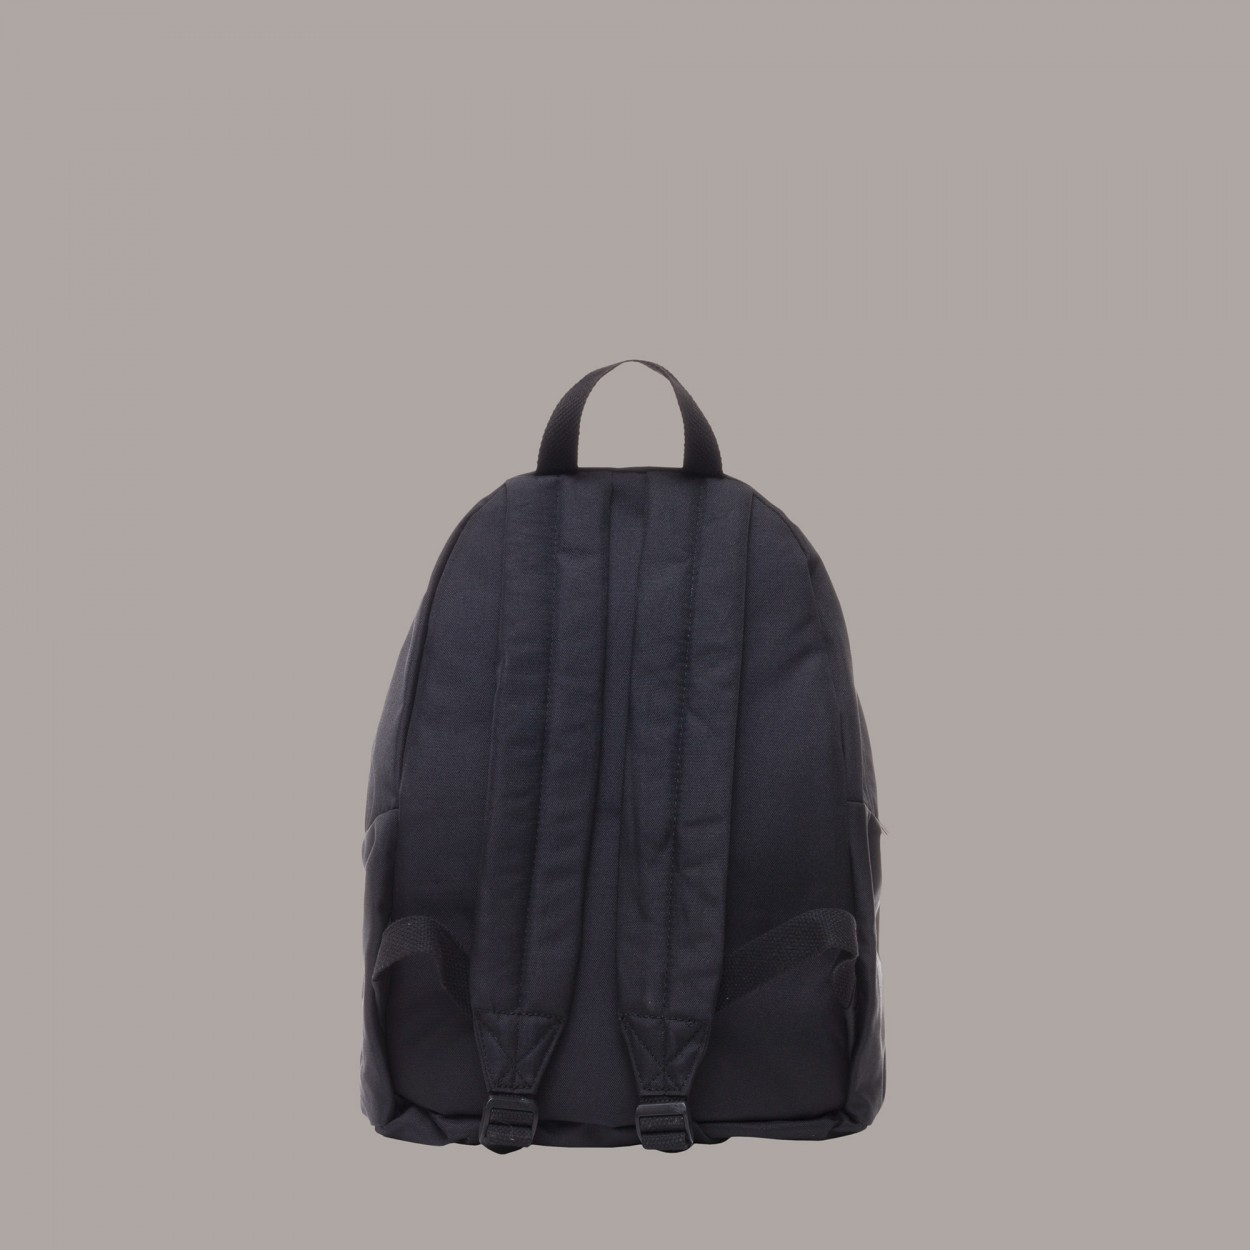 BACKPAK - CD19IA29NE - COMME DES FKDOWN